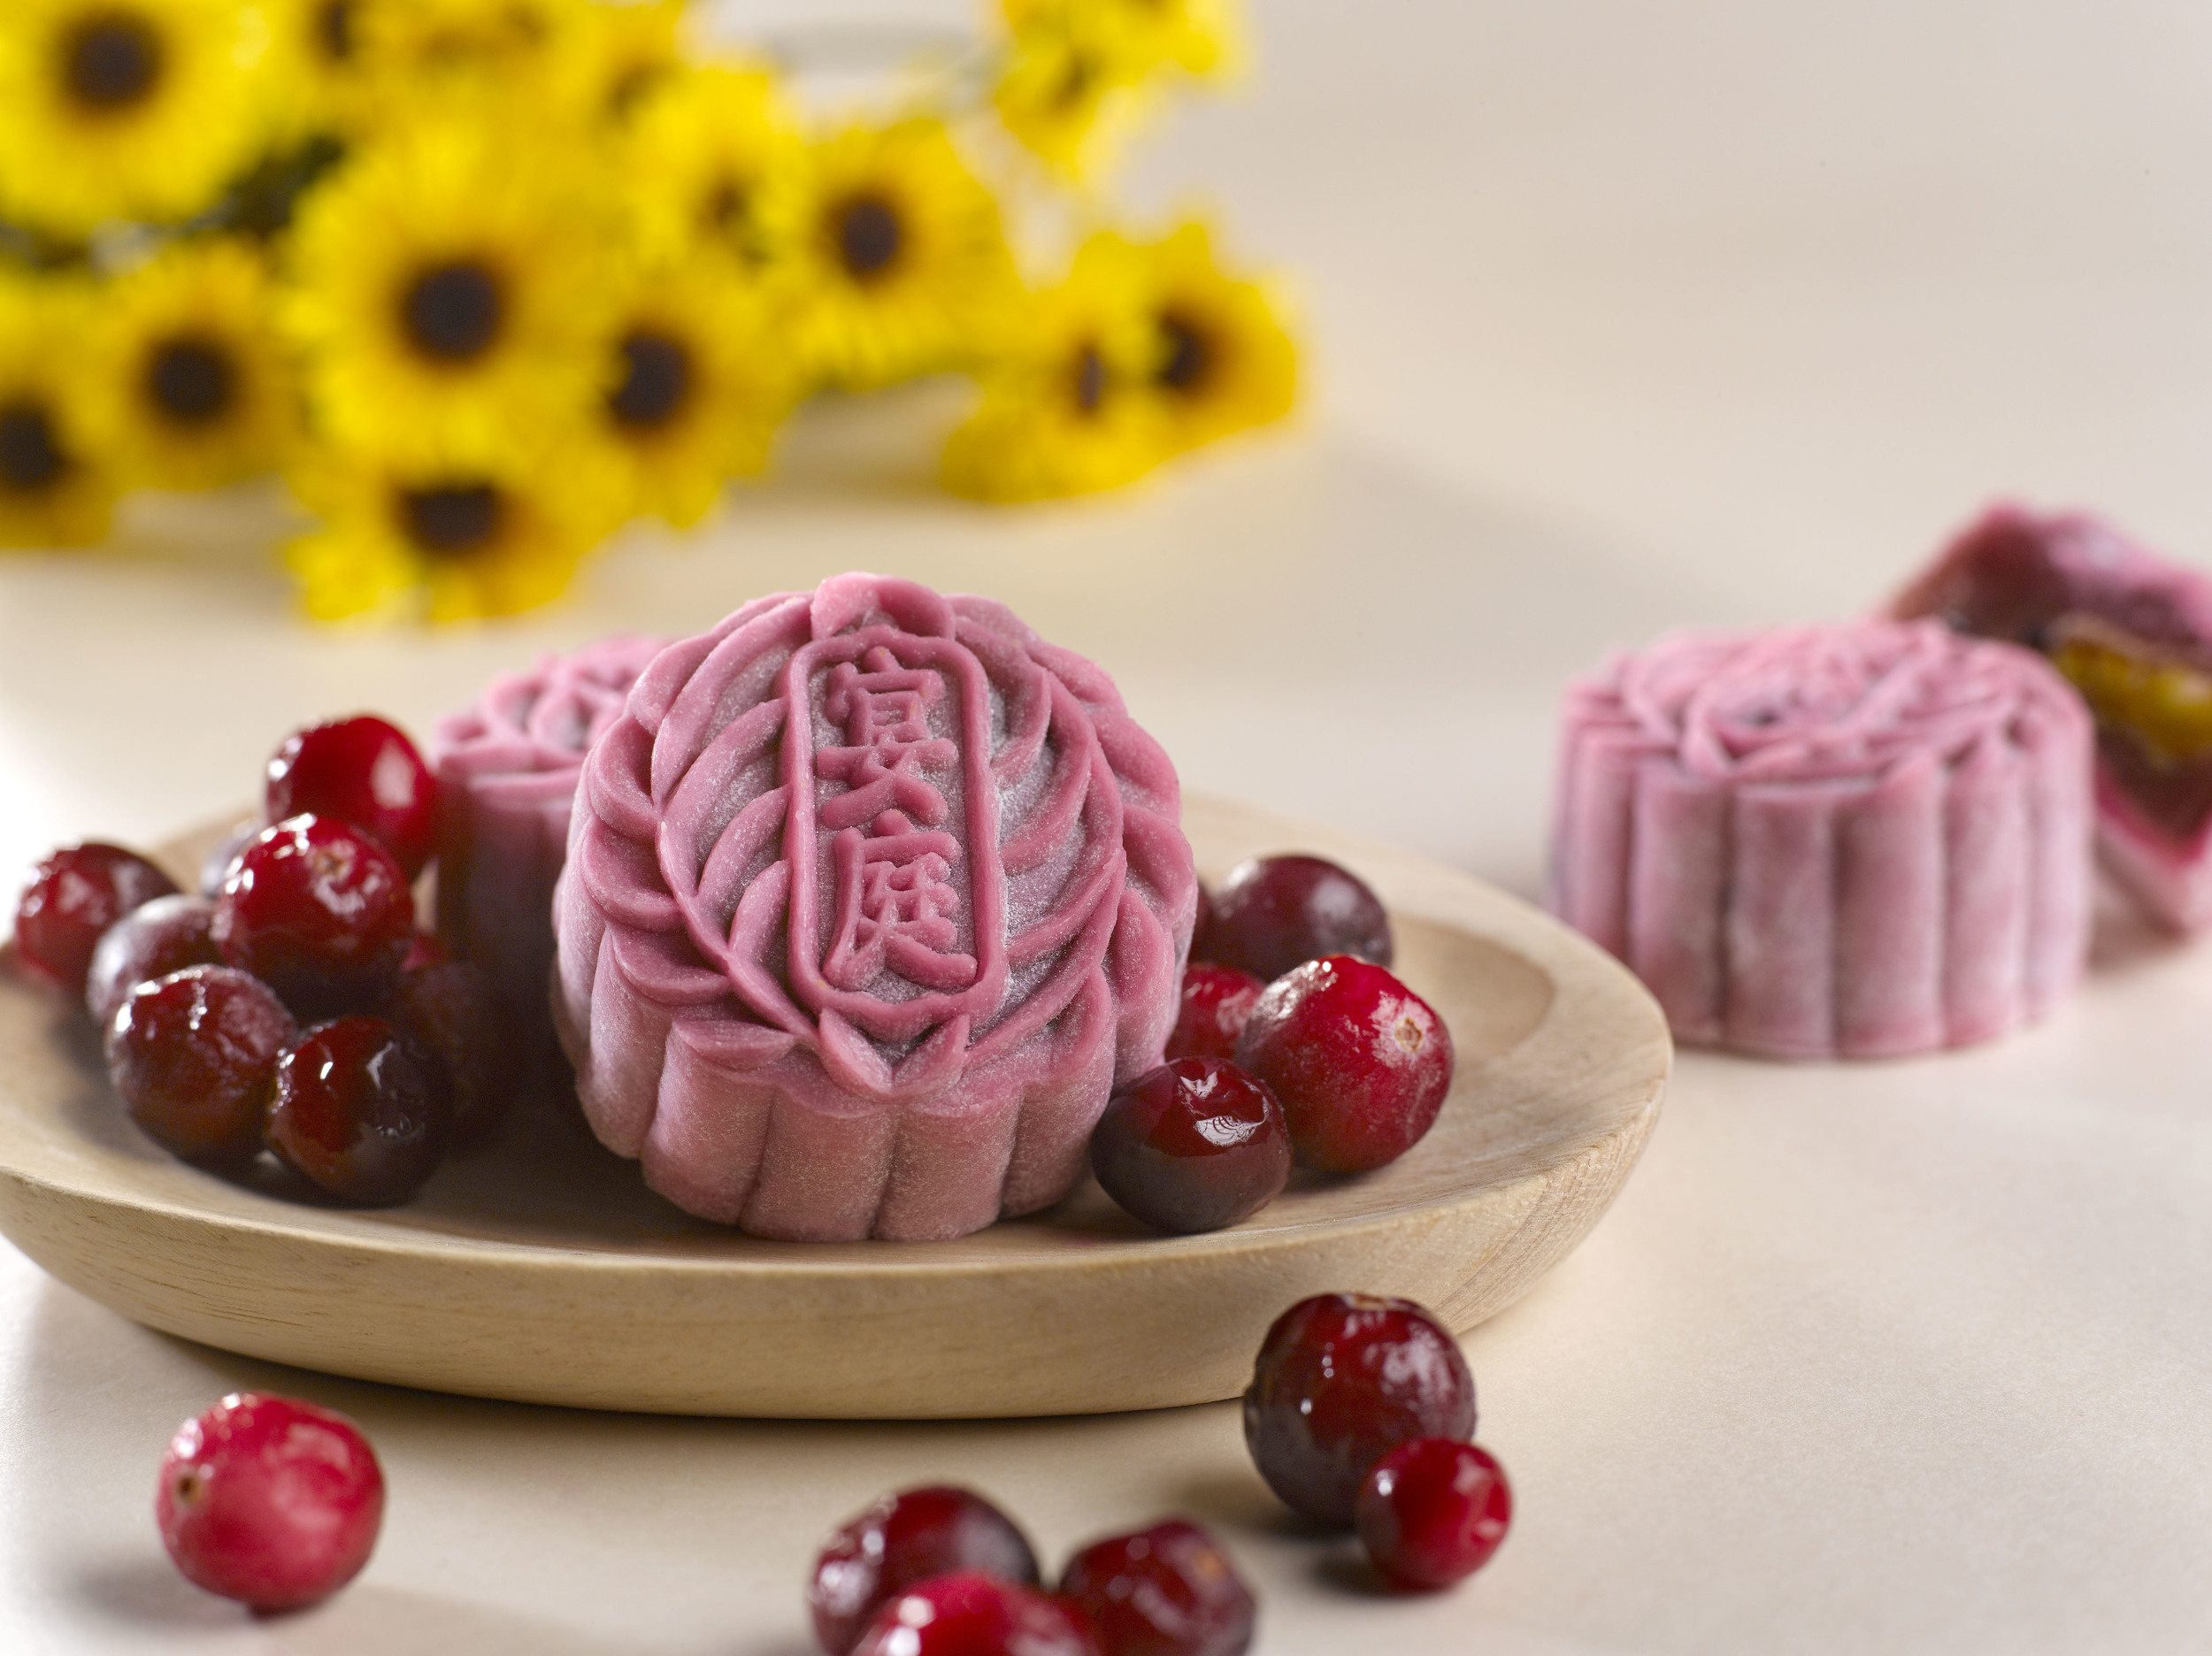 Cranberry Paste with Salted Egg Yolk Mooncake (S$73+ for a box of 8) | Photo Credit: The St. Regis Singapore